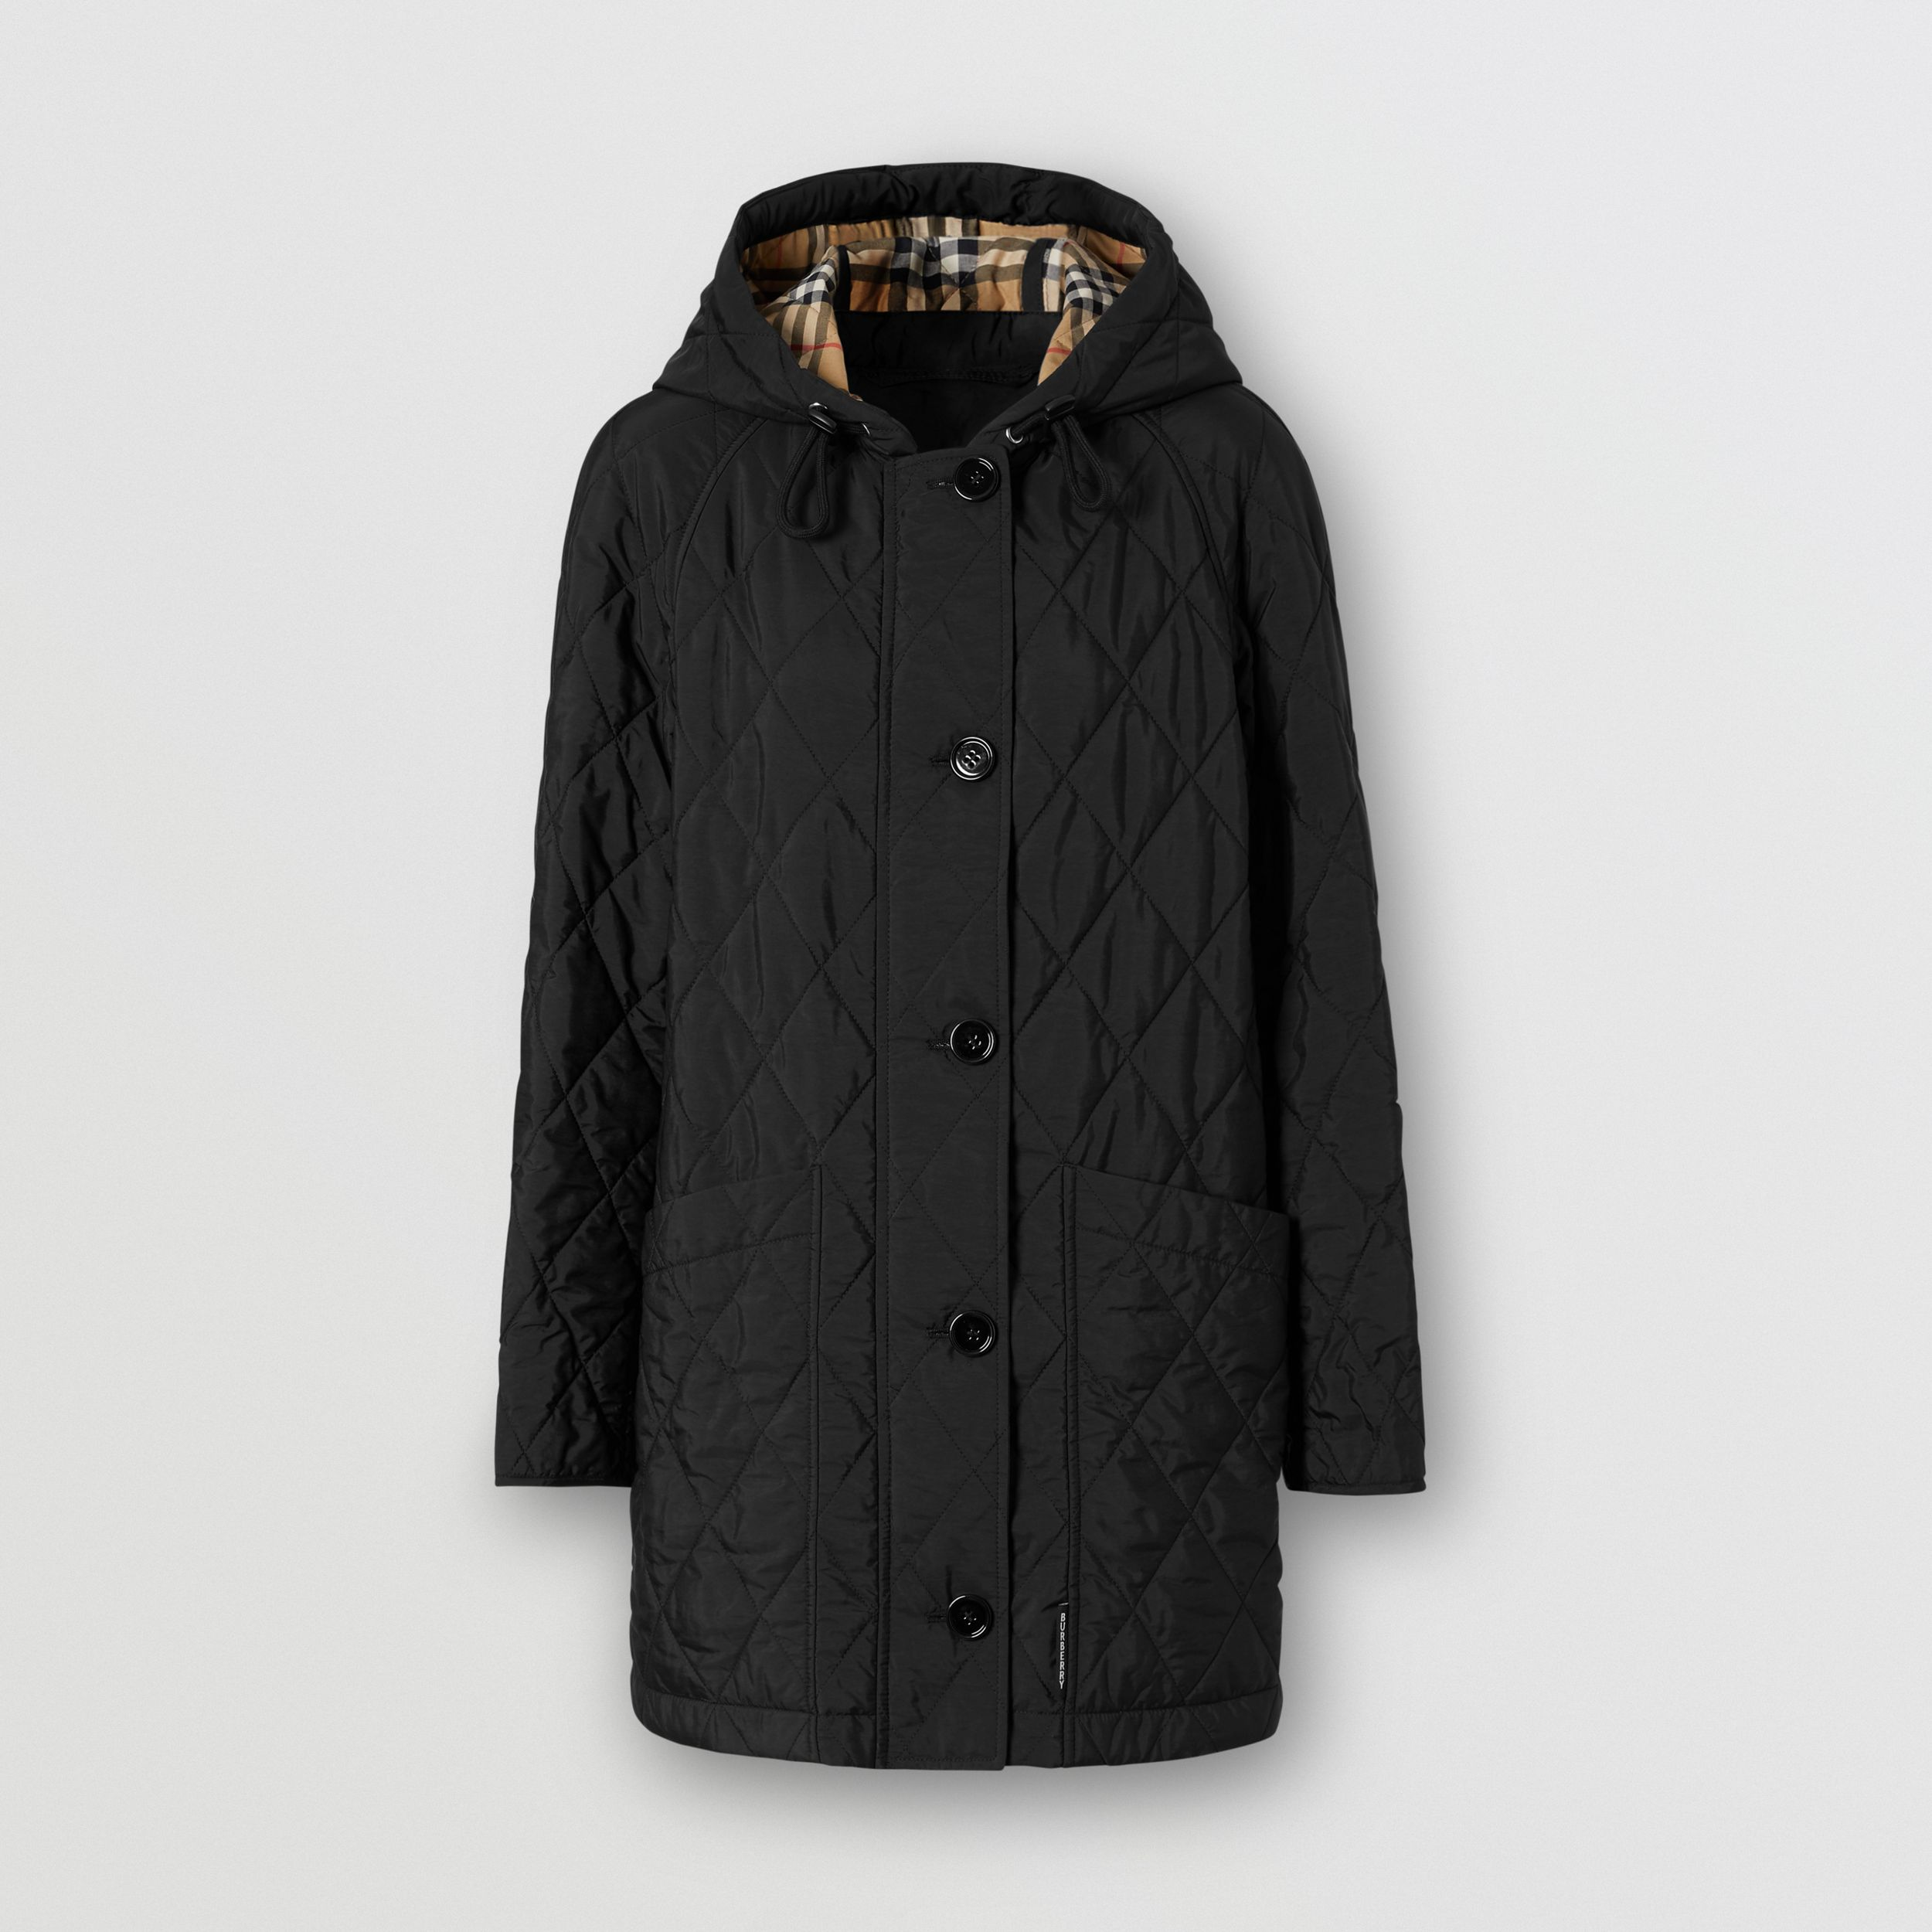 Diamond Quilted Thermoregulated Hooded Coat in Black - Women | Burberry - 4